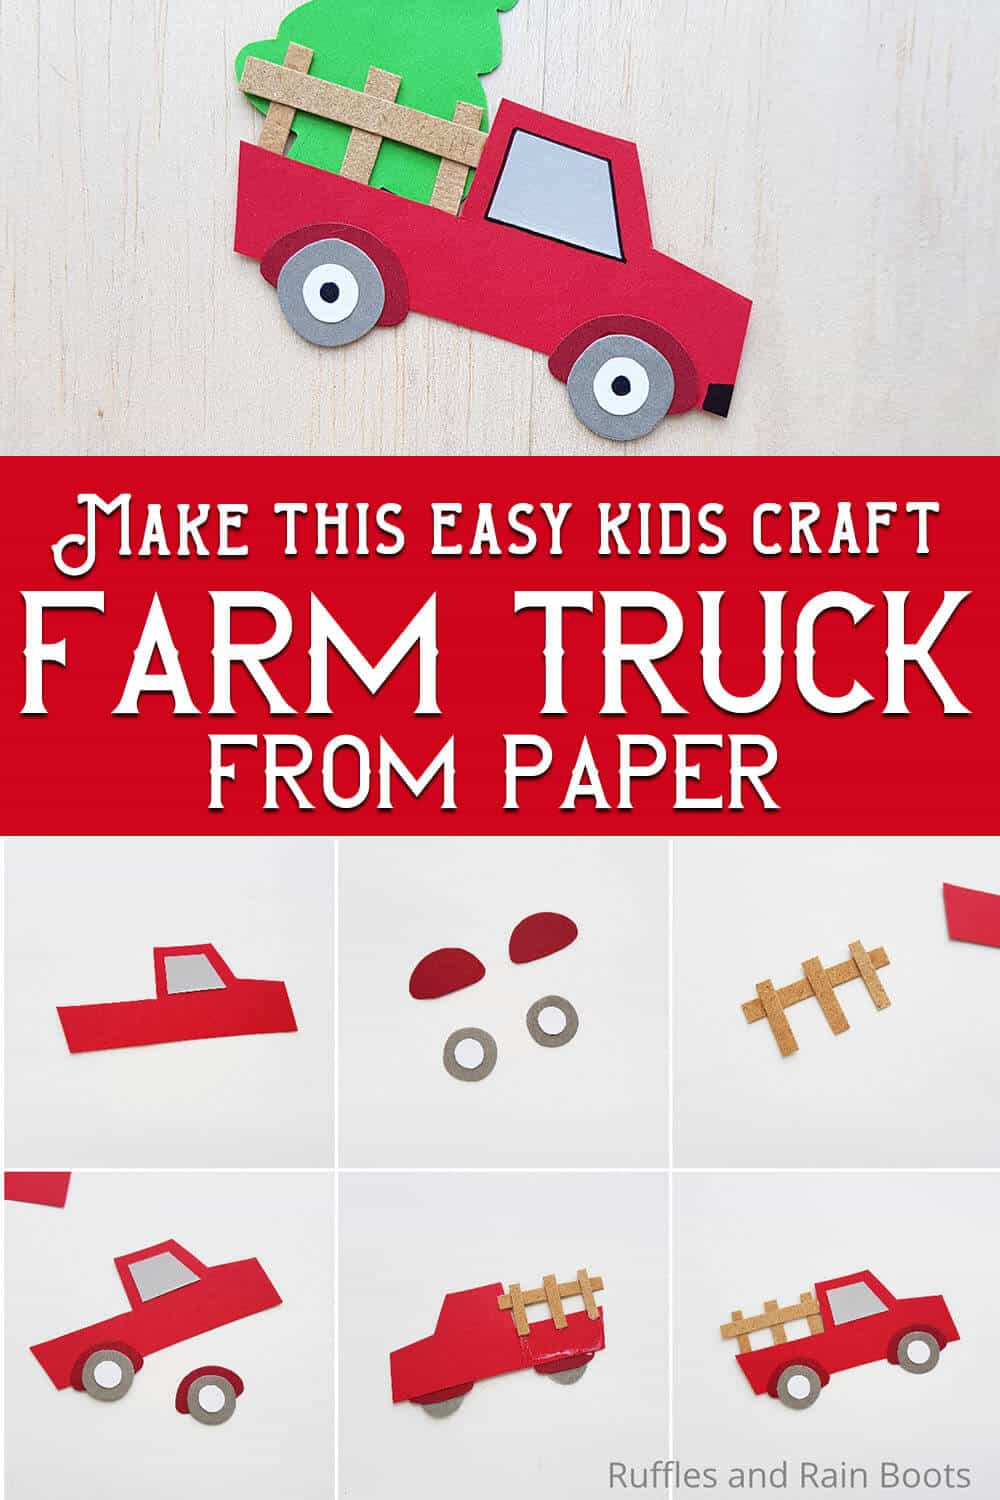 photo collage of easy paper craft for kids farm truck with text which reads make this easy kids craft farm truck from paper